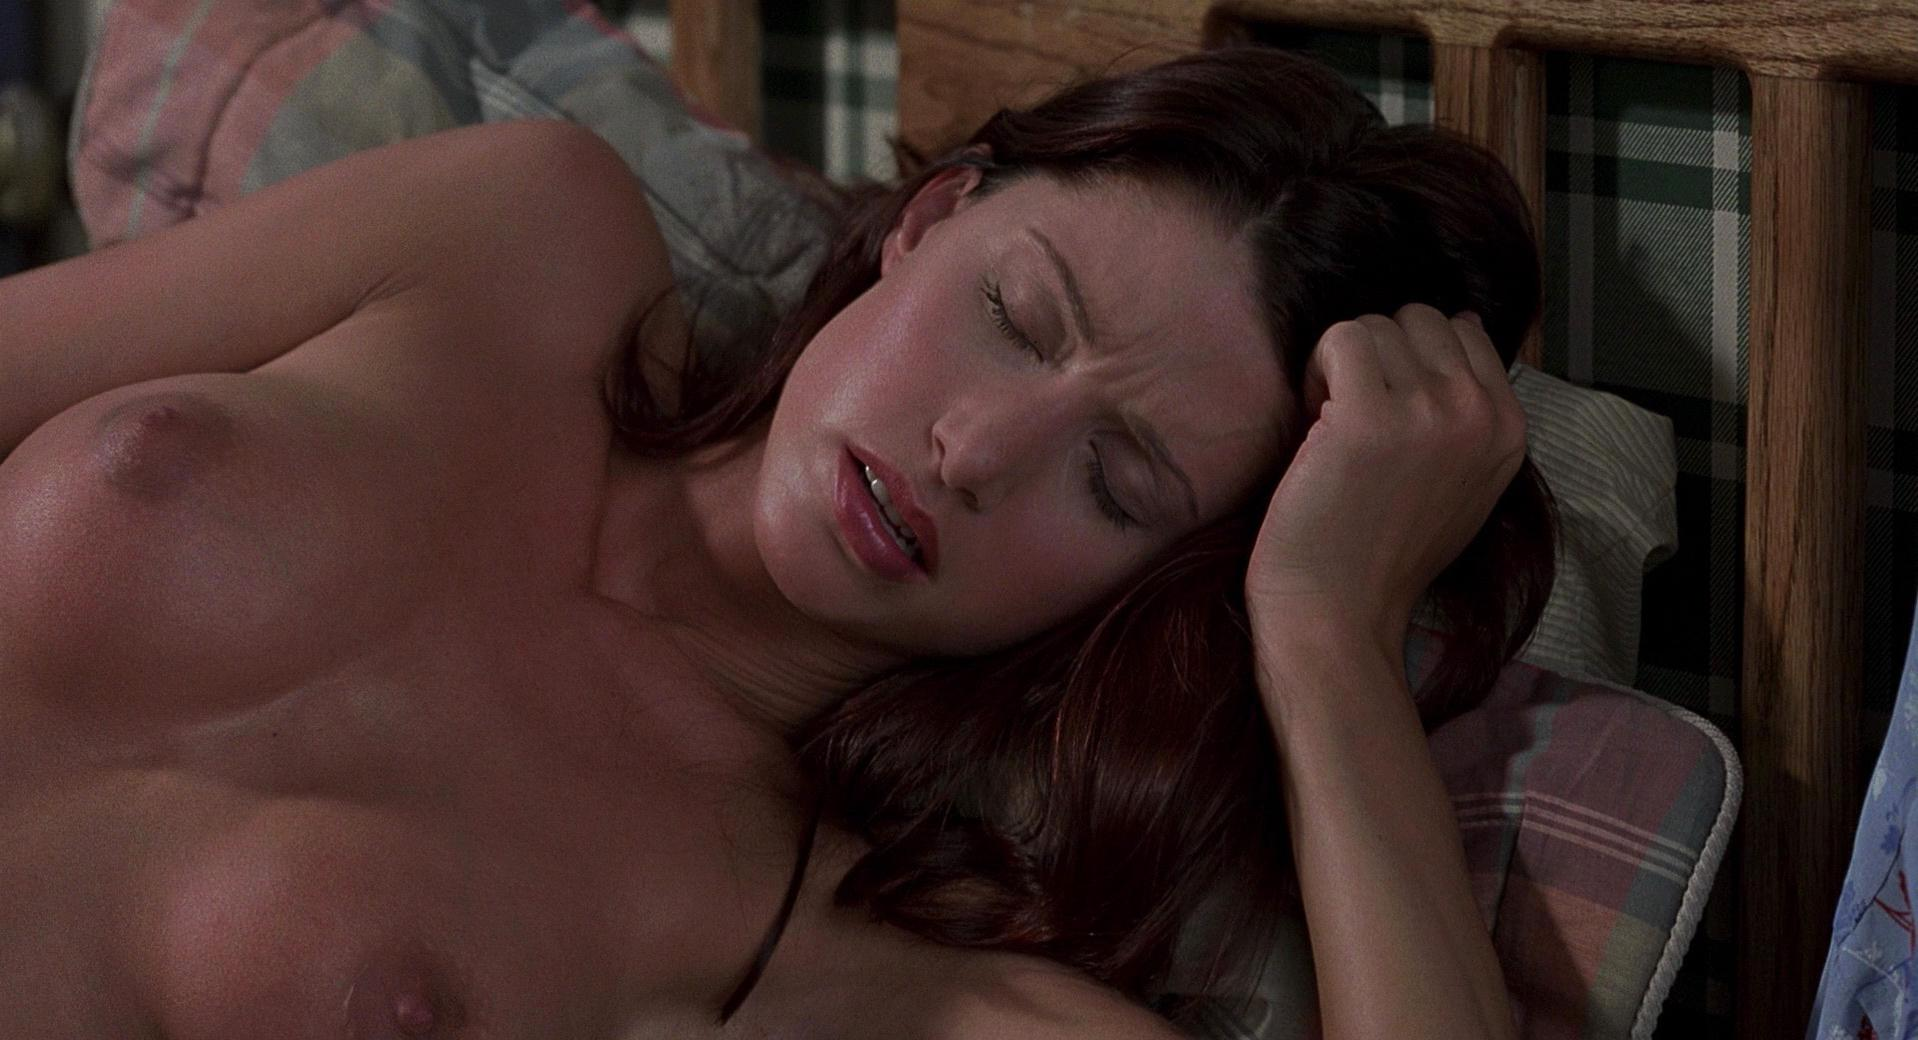 American Pie Uncensored nude video celebs » shannon elizabeth nude - american pie (1999)